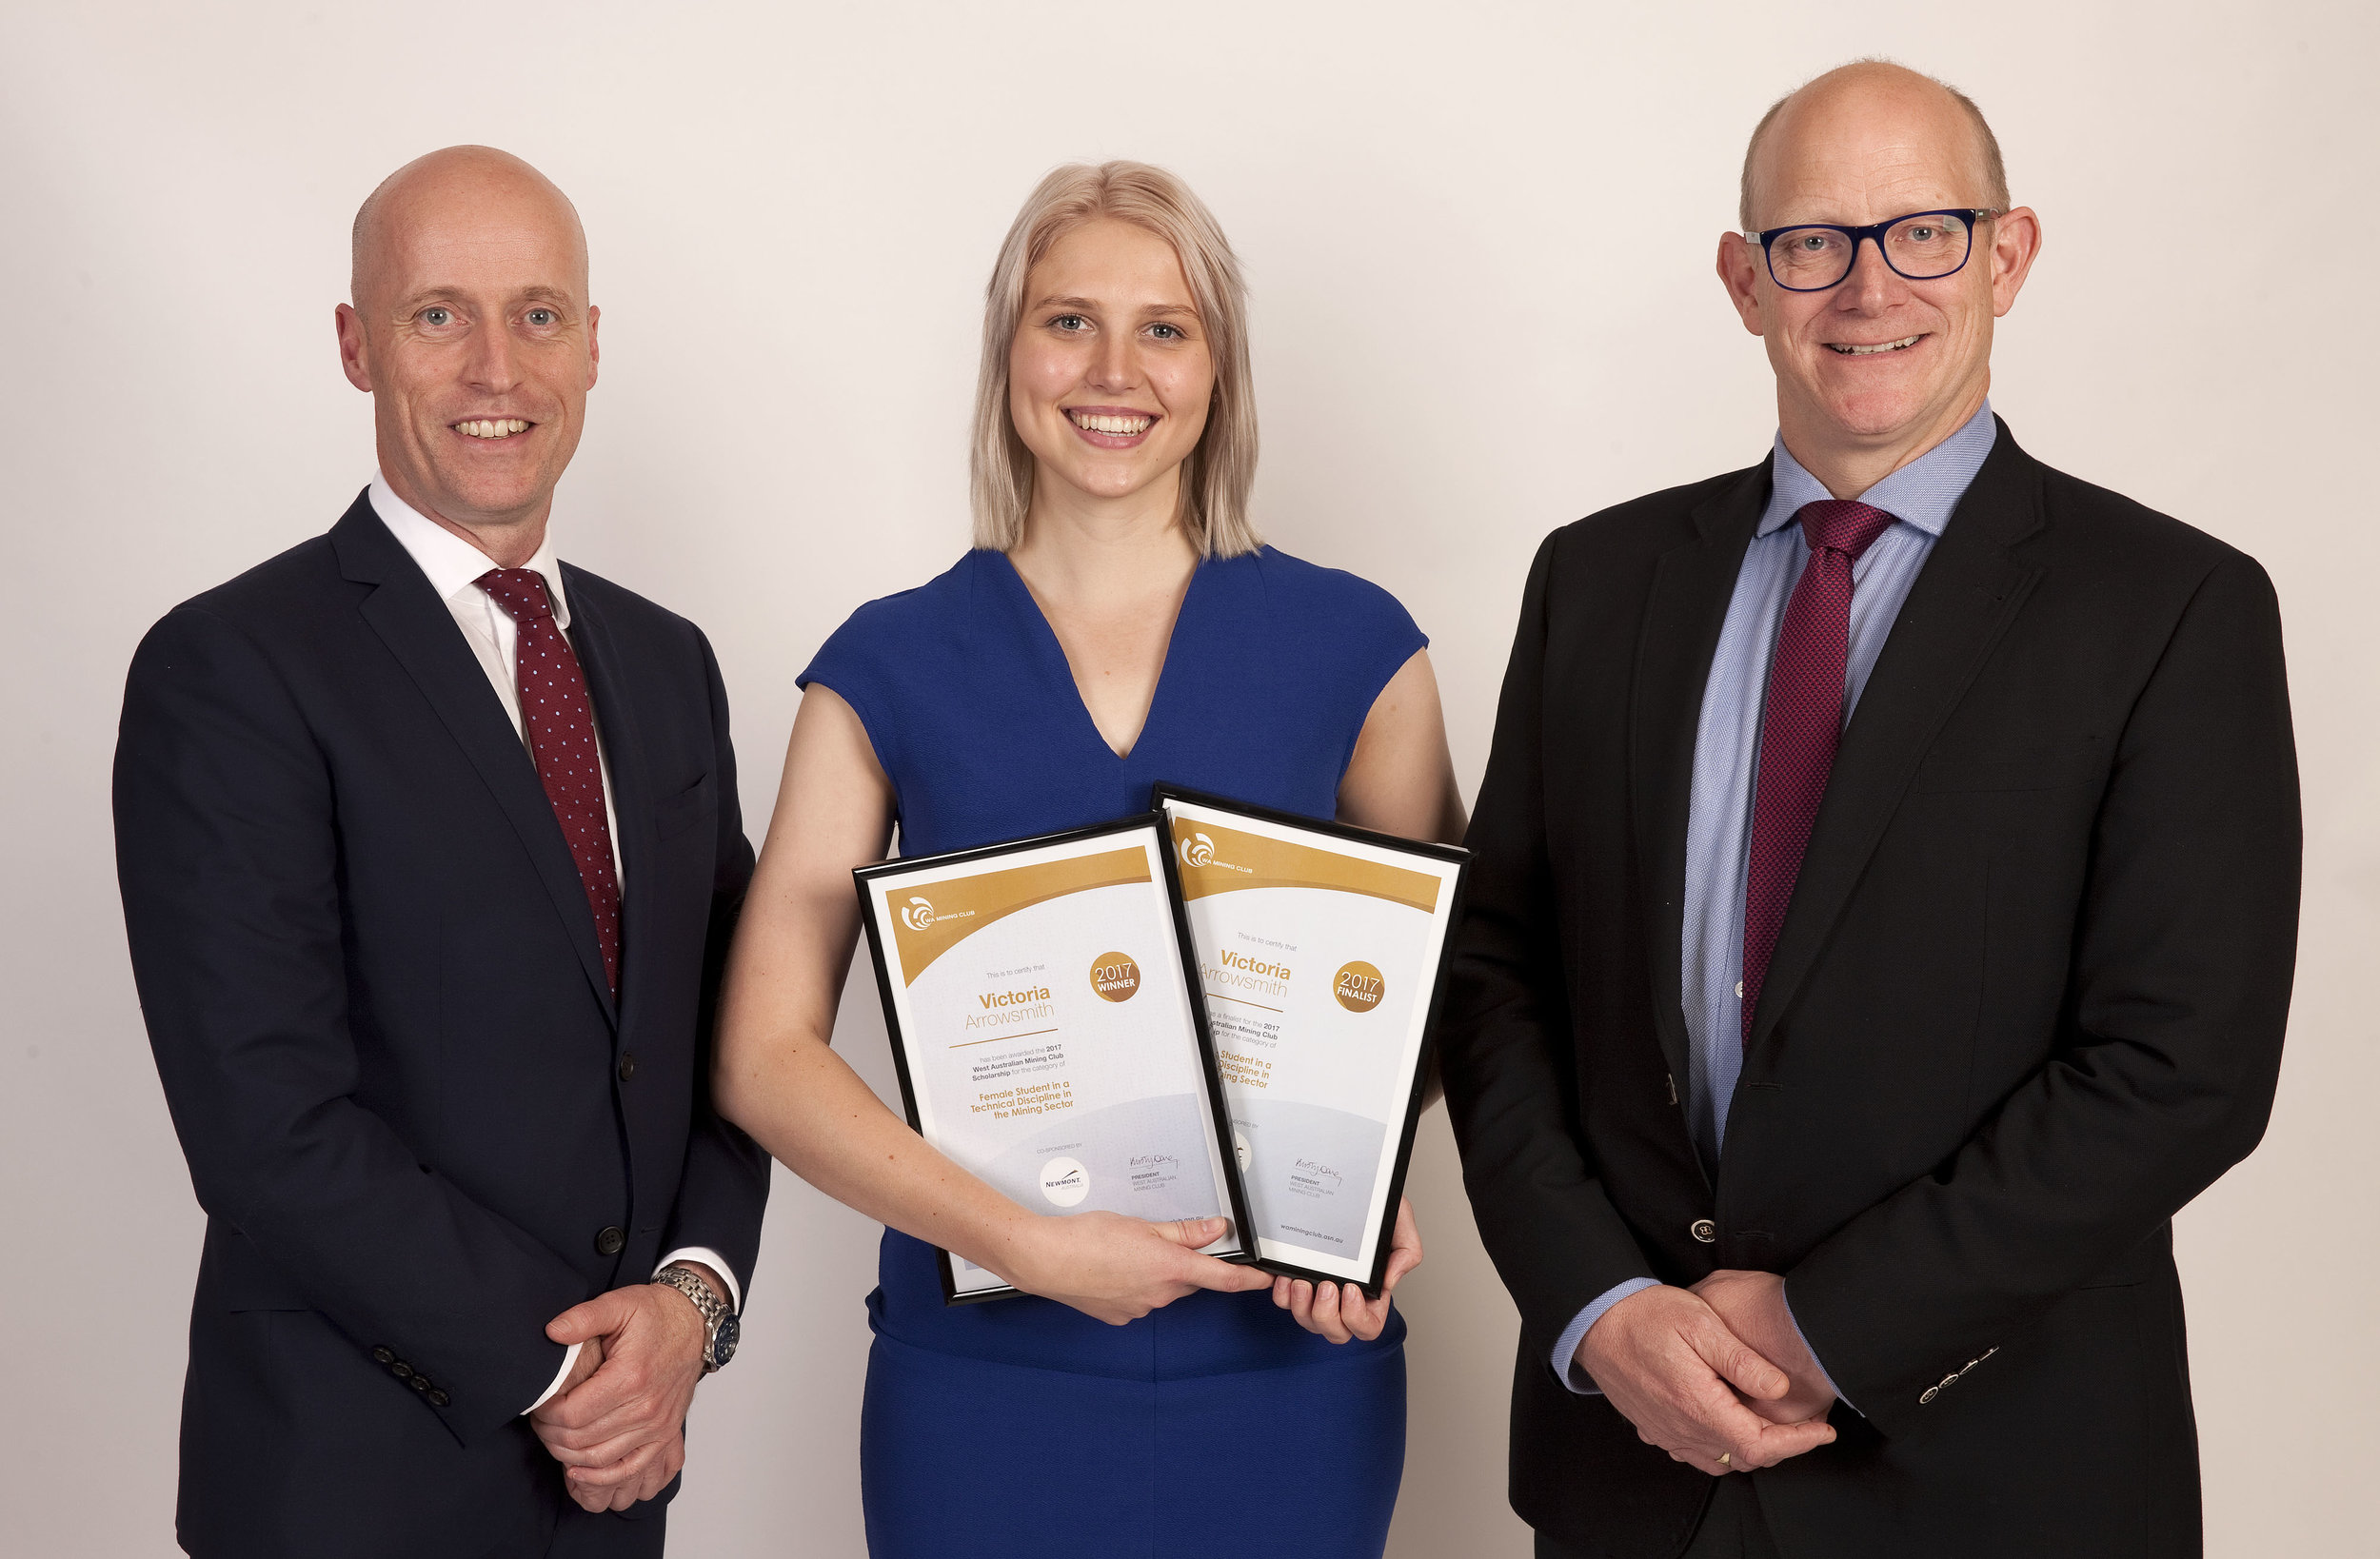 Victoria Arrowsmith, winner of the Female Student in a Technical Discipline in the Mining Sector,with Newmont Australia Regional Senior VP Alex Bates and Group Executive of Environment and Social Responsibility Ken Ramsey.